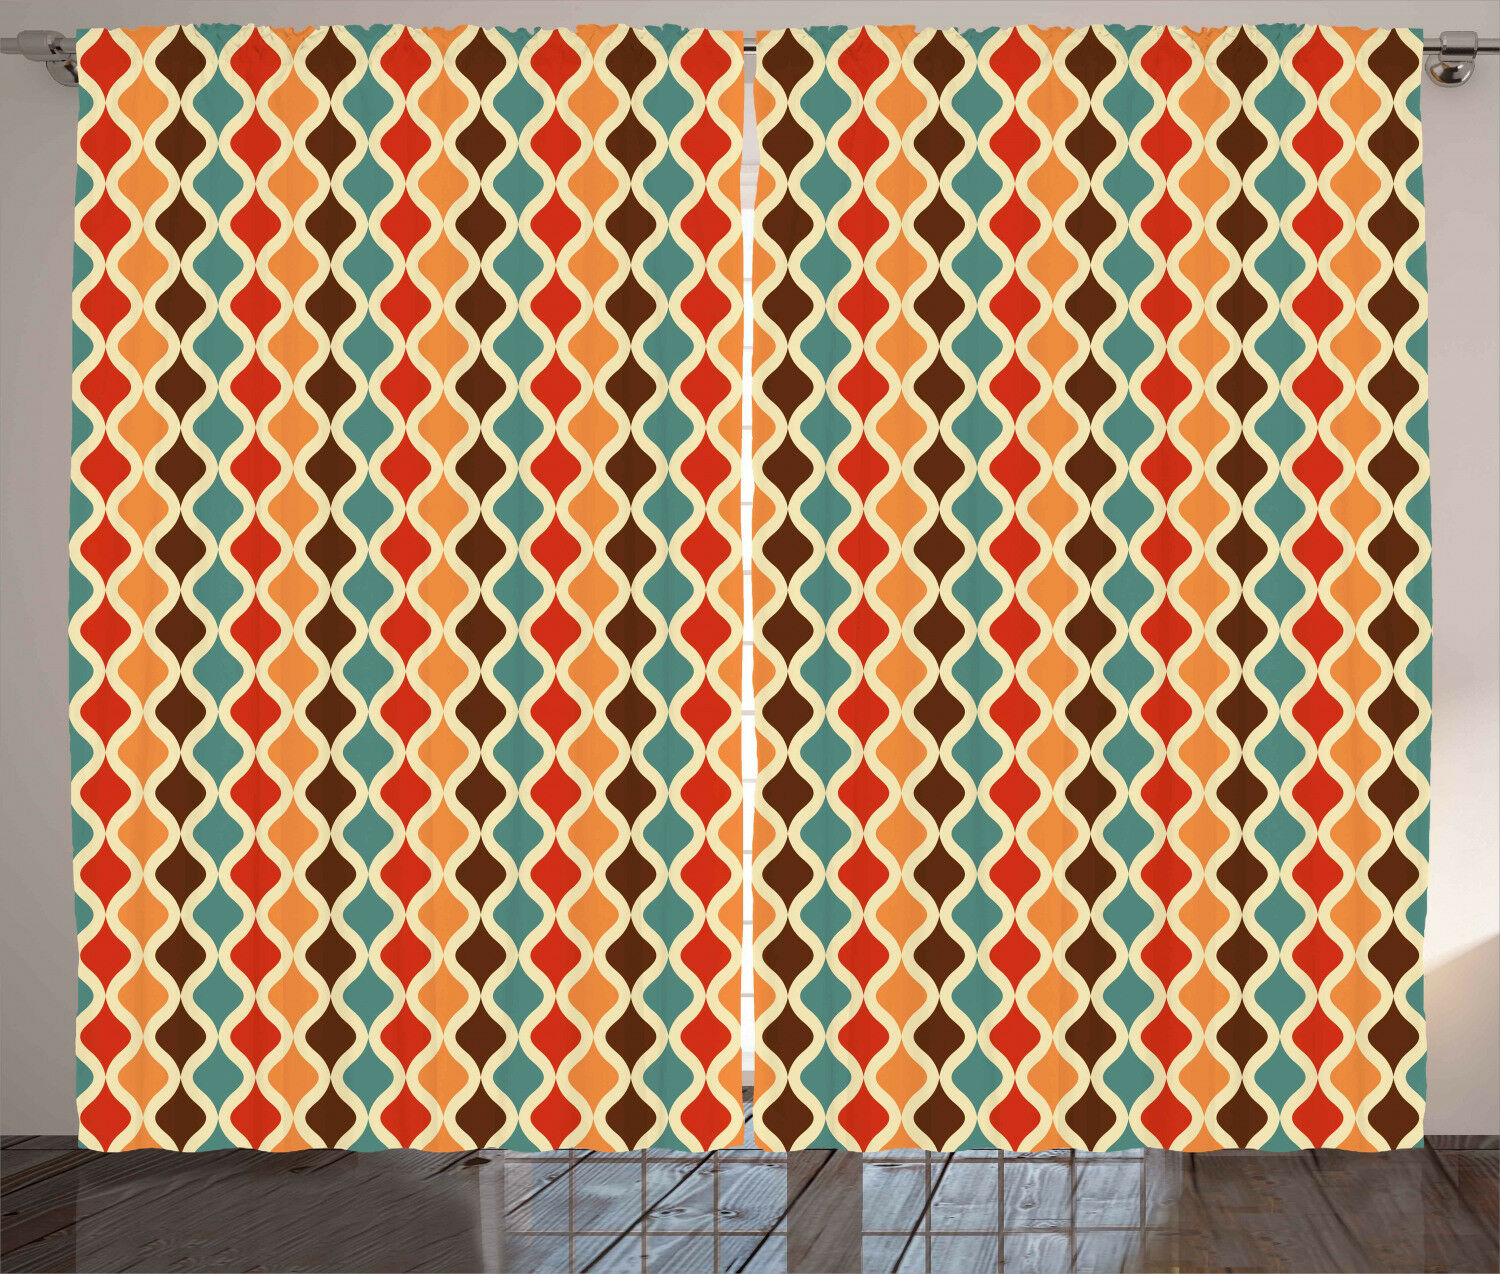 Geometric Curtains Funky Funky Funky Vintage Forms Window Drapes 2 Panel Set 108x84 Inches 8f58cc